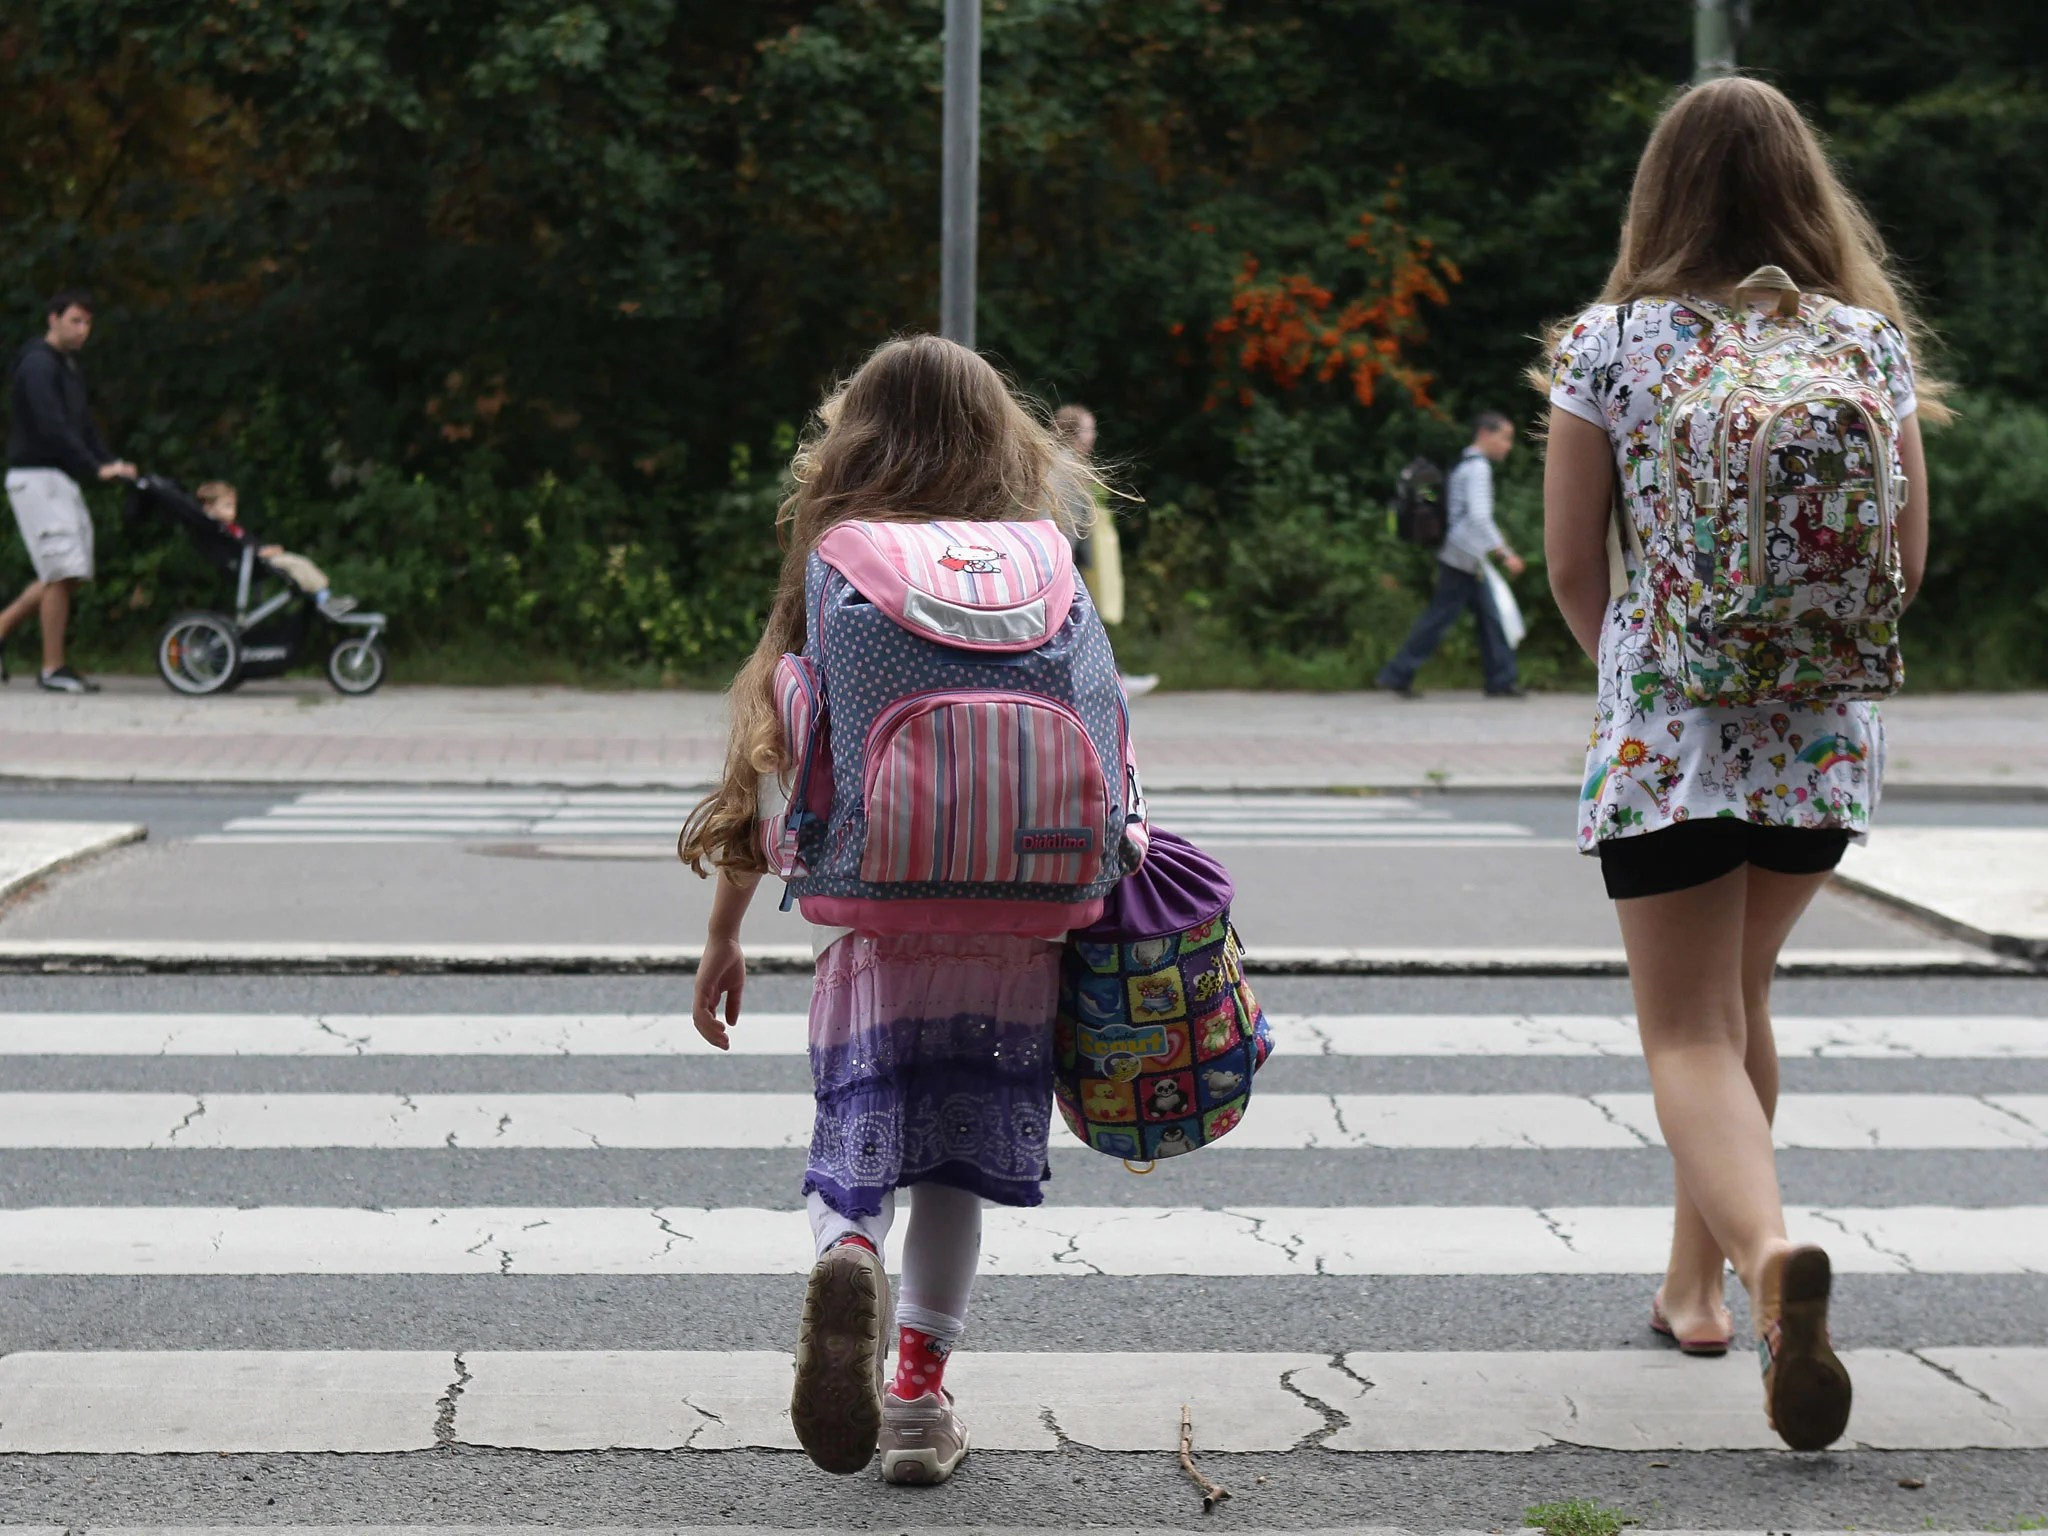 Lonely Girl Walking In Rain Wallpaper Only 25 Per Cent Of Children Walk To School Alone Compared